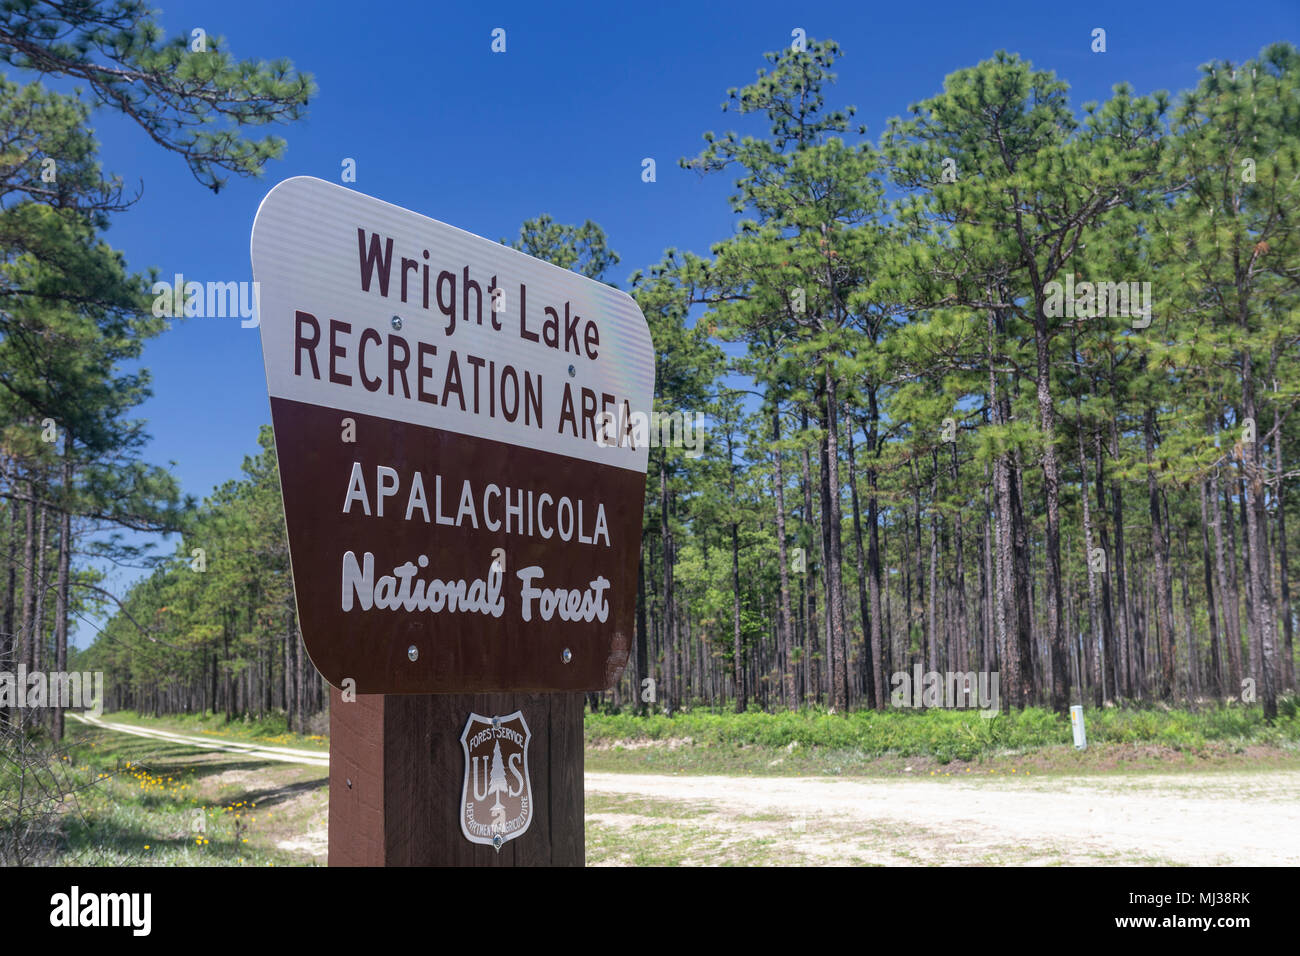 A sign marks the entrance to Wright Lake Recreation Area in Apalachicola National Forest in the panhandle of Florida. - Stock Image